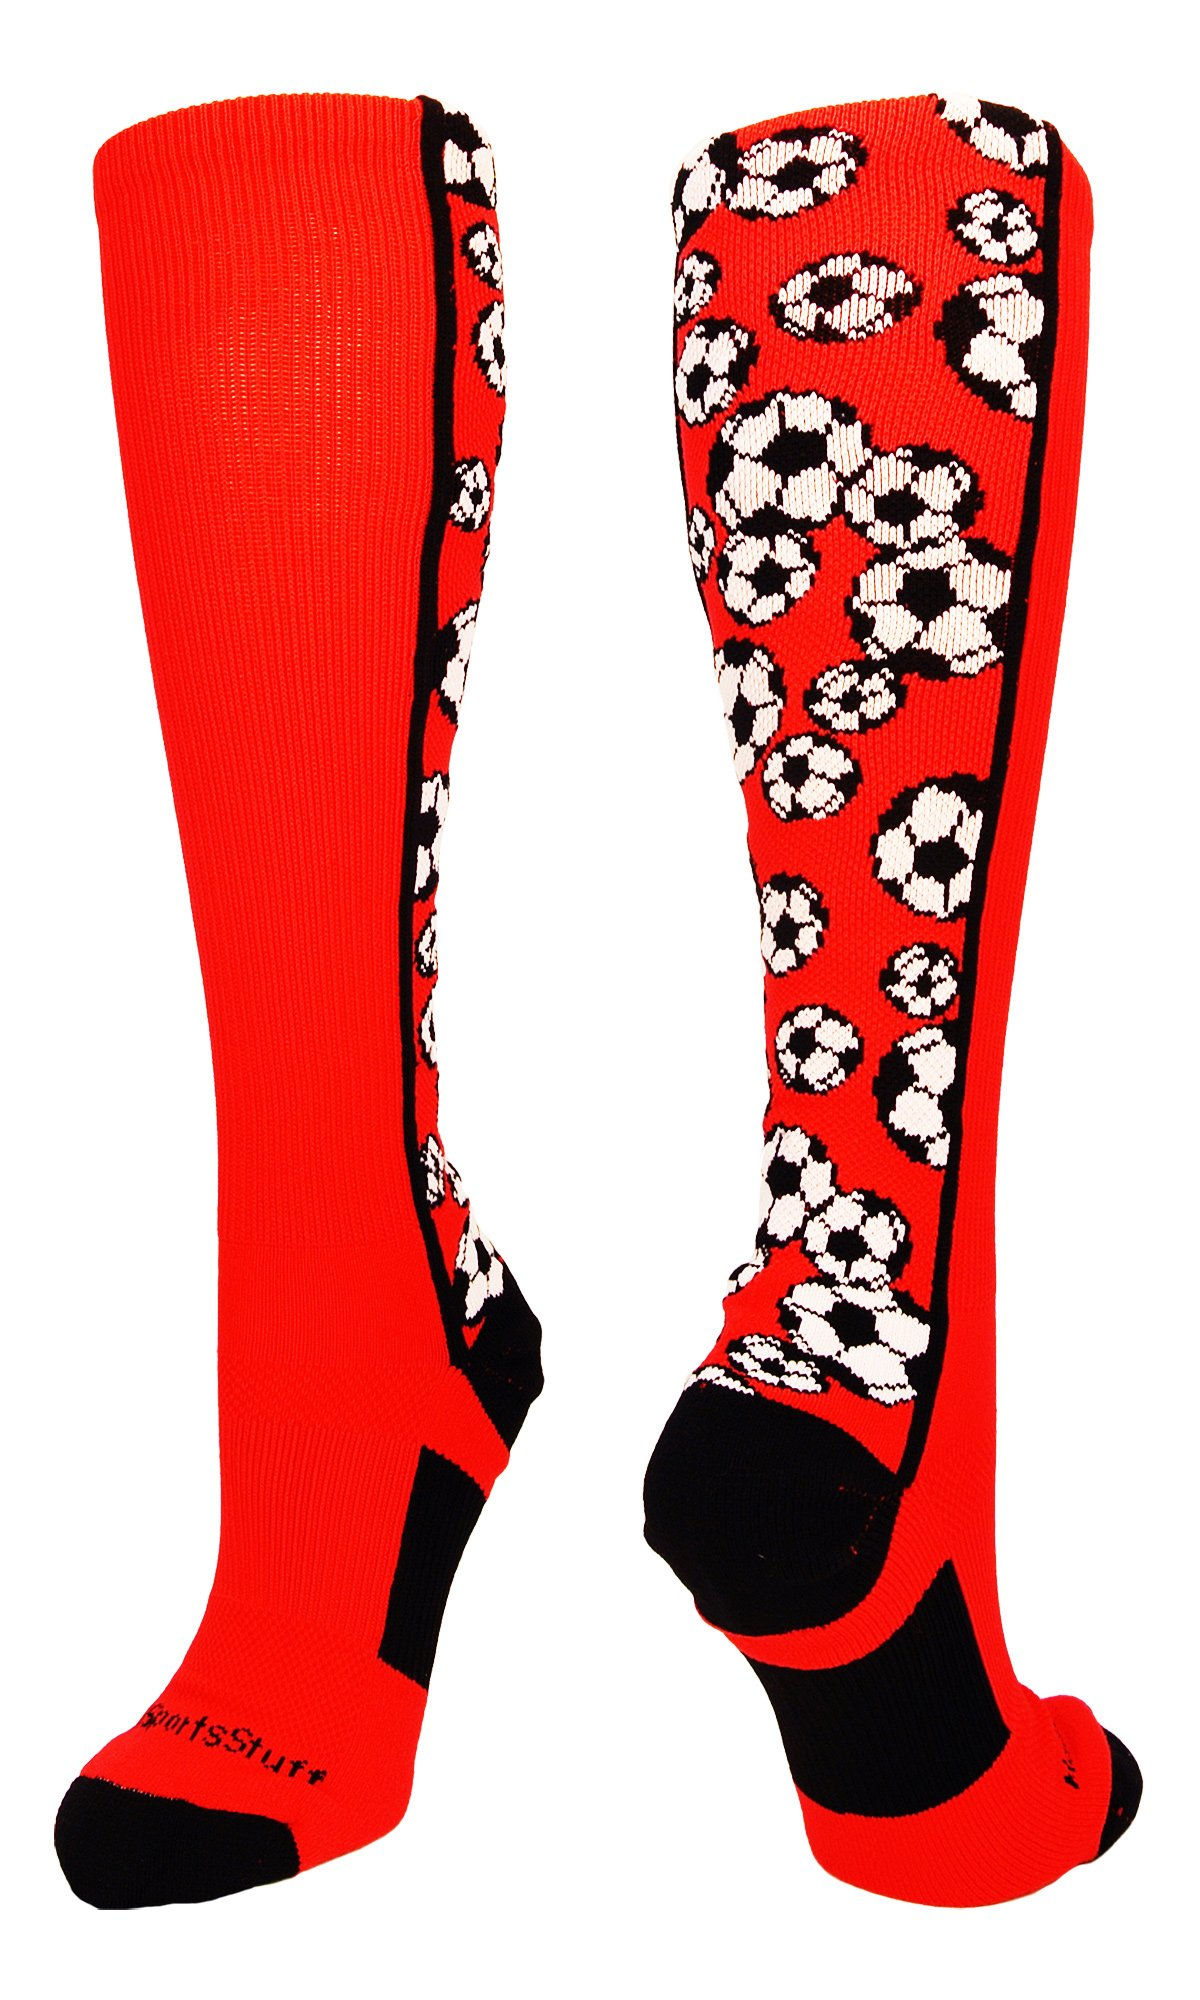 MadSportsStuff Crazy Soccer Socks with Soccer Balls Over The Calf (Red/Black, Small) by MadSportsStuff